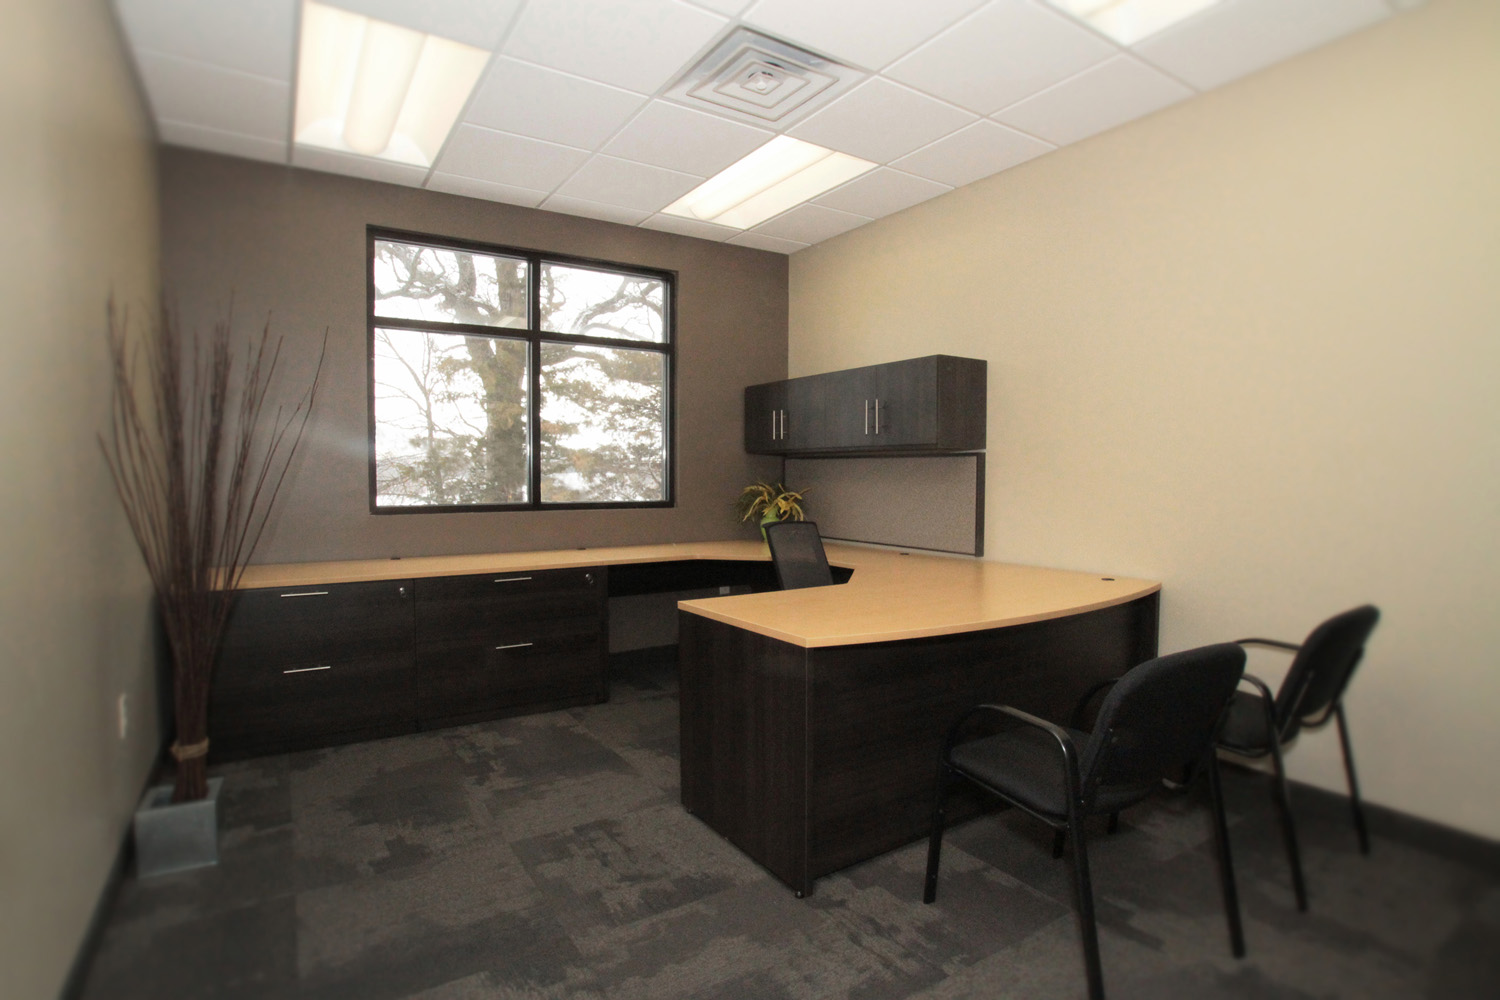 Office Space Design Mankato New Used Office Furnishings Mankato: home office design color ideas